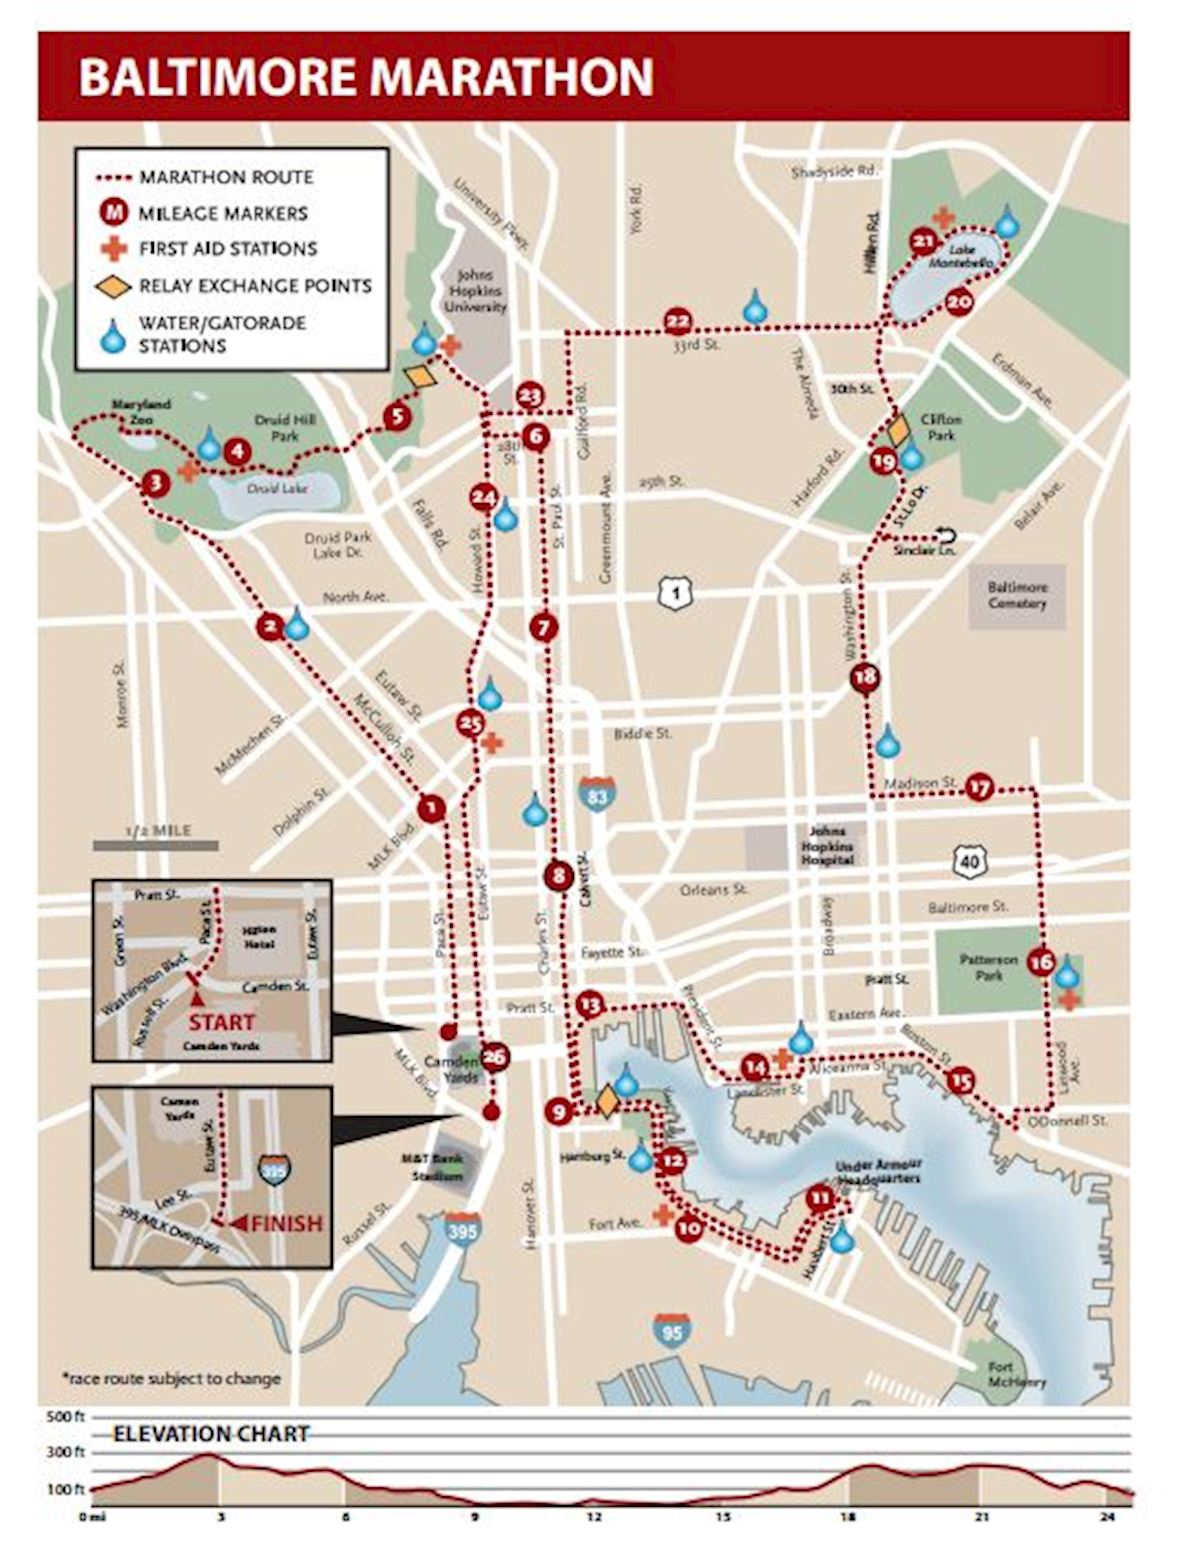 Baltimore Marathon Map Baltimore Running Festival, Oct 19 2019 | World's Marathons